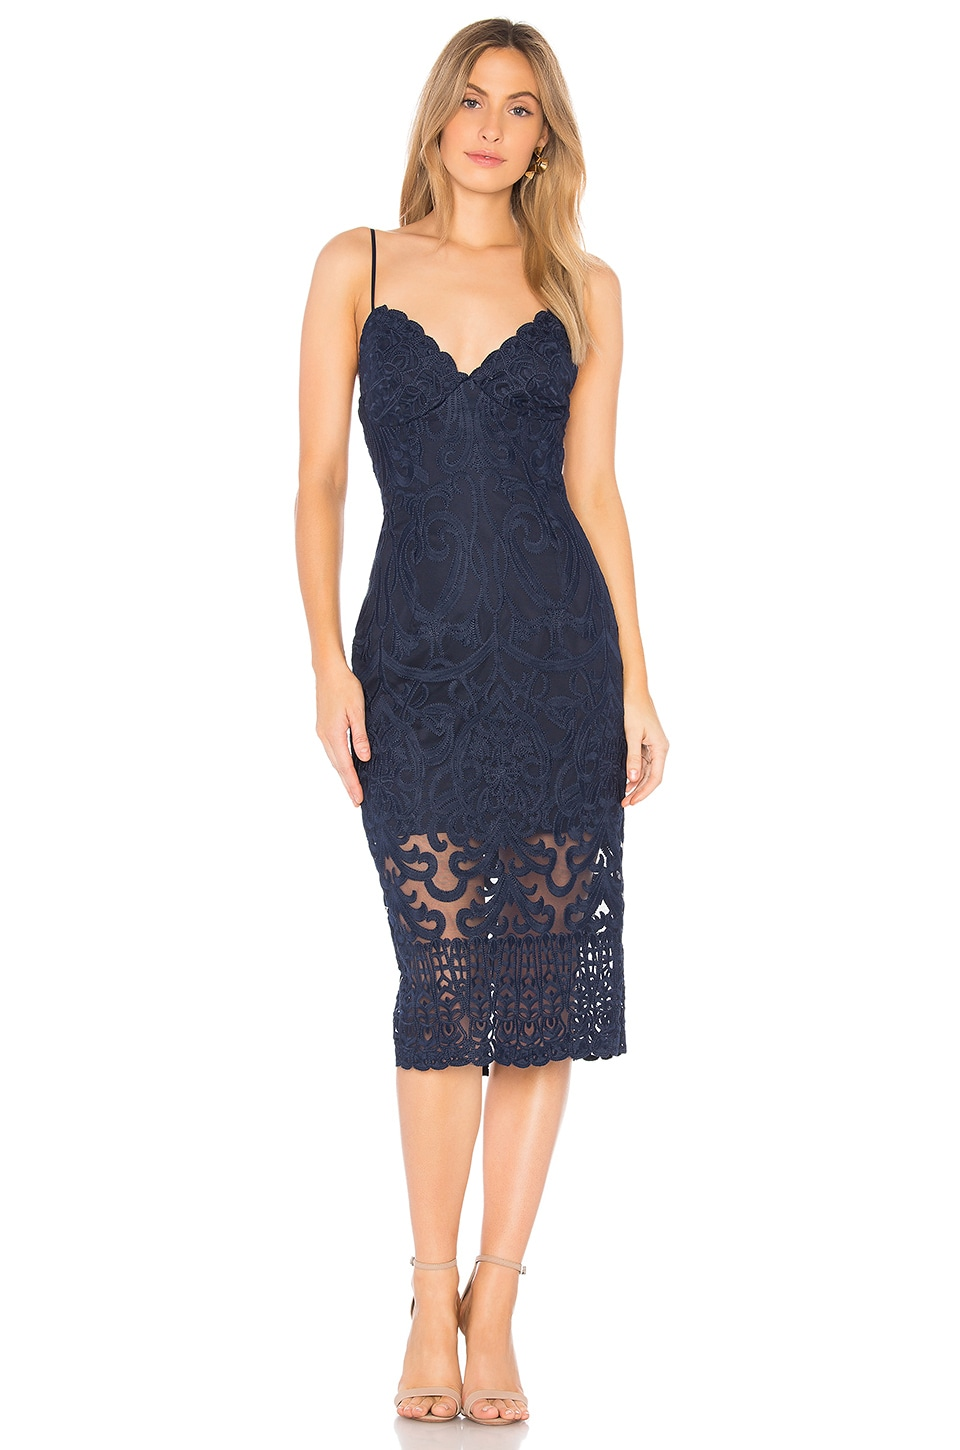 Bardot Gia Dress in Navy